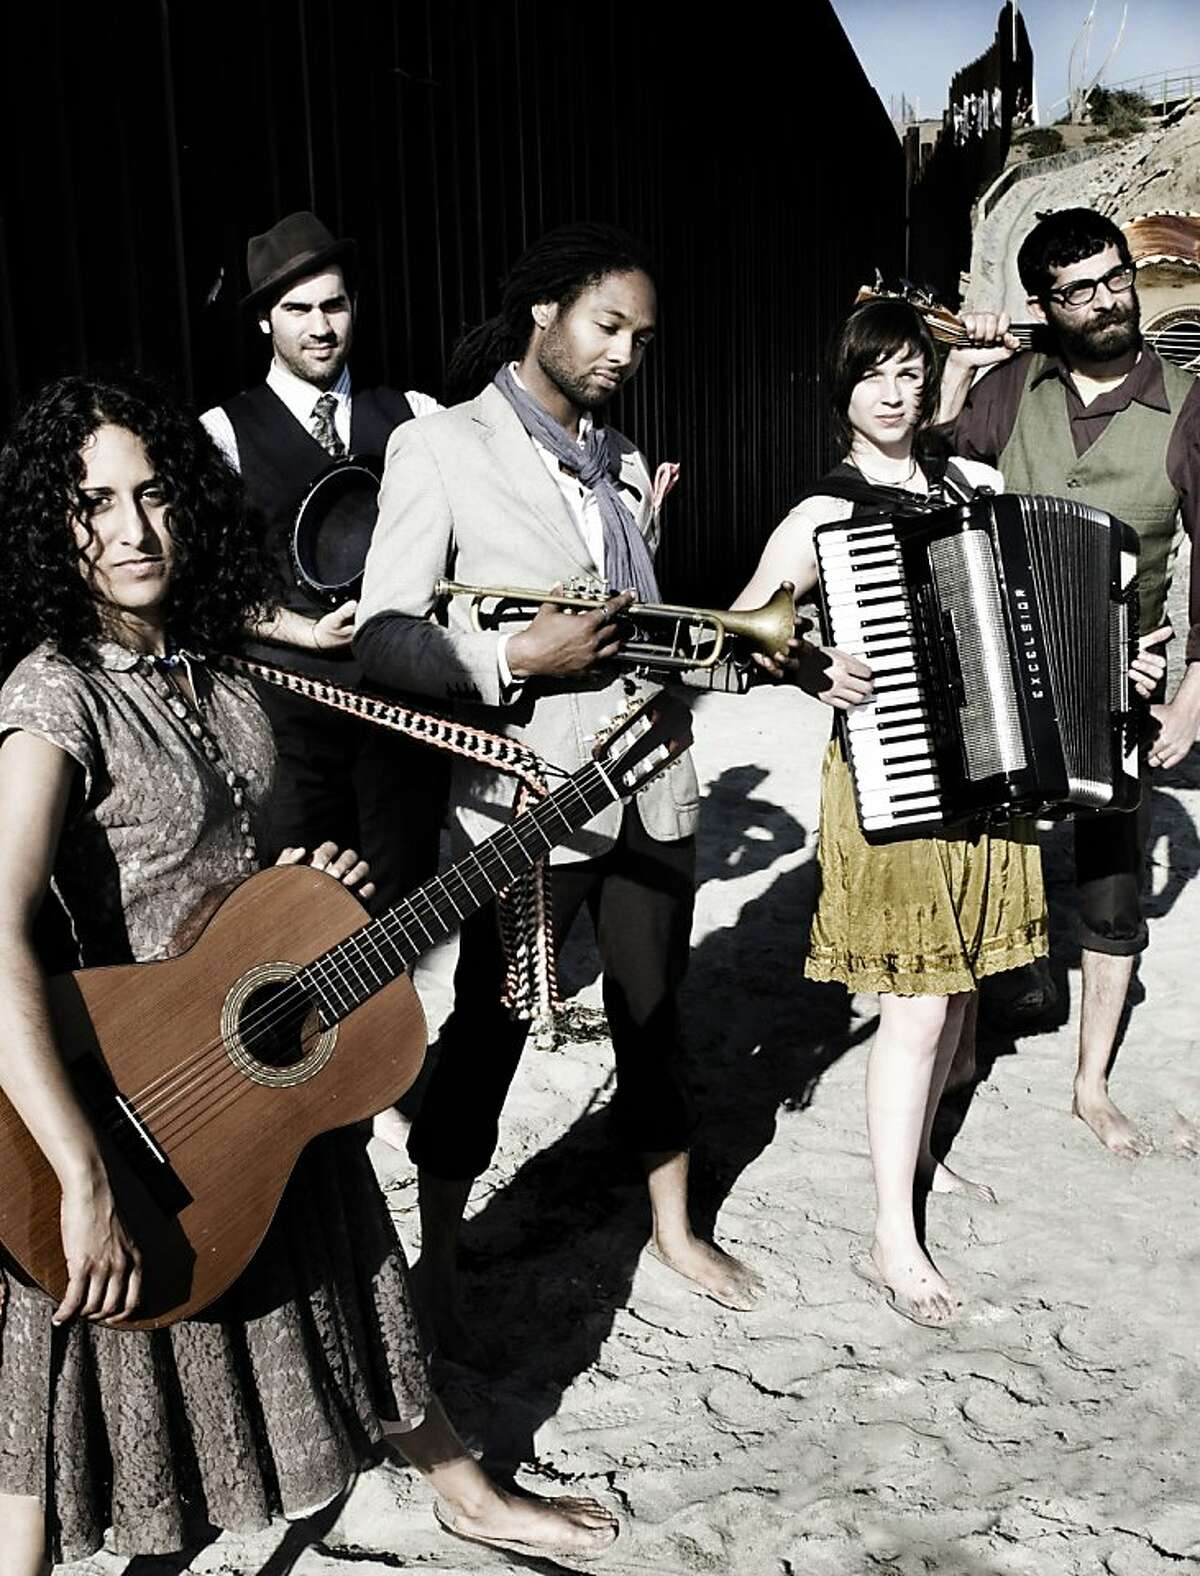 Rupa and the April Fishes perform Sunday at the Peninsula Jewish Community Center.